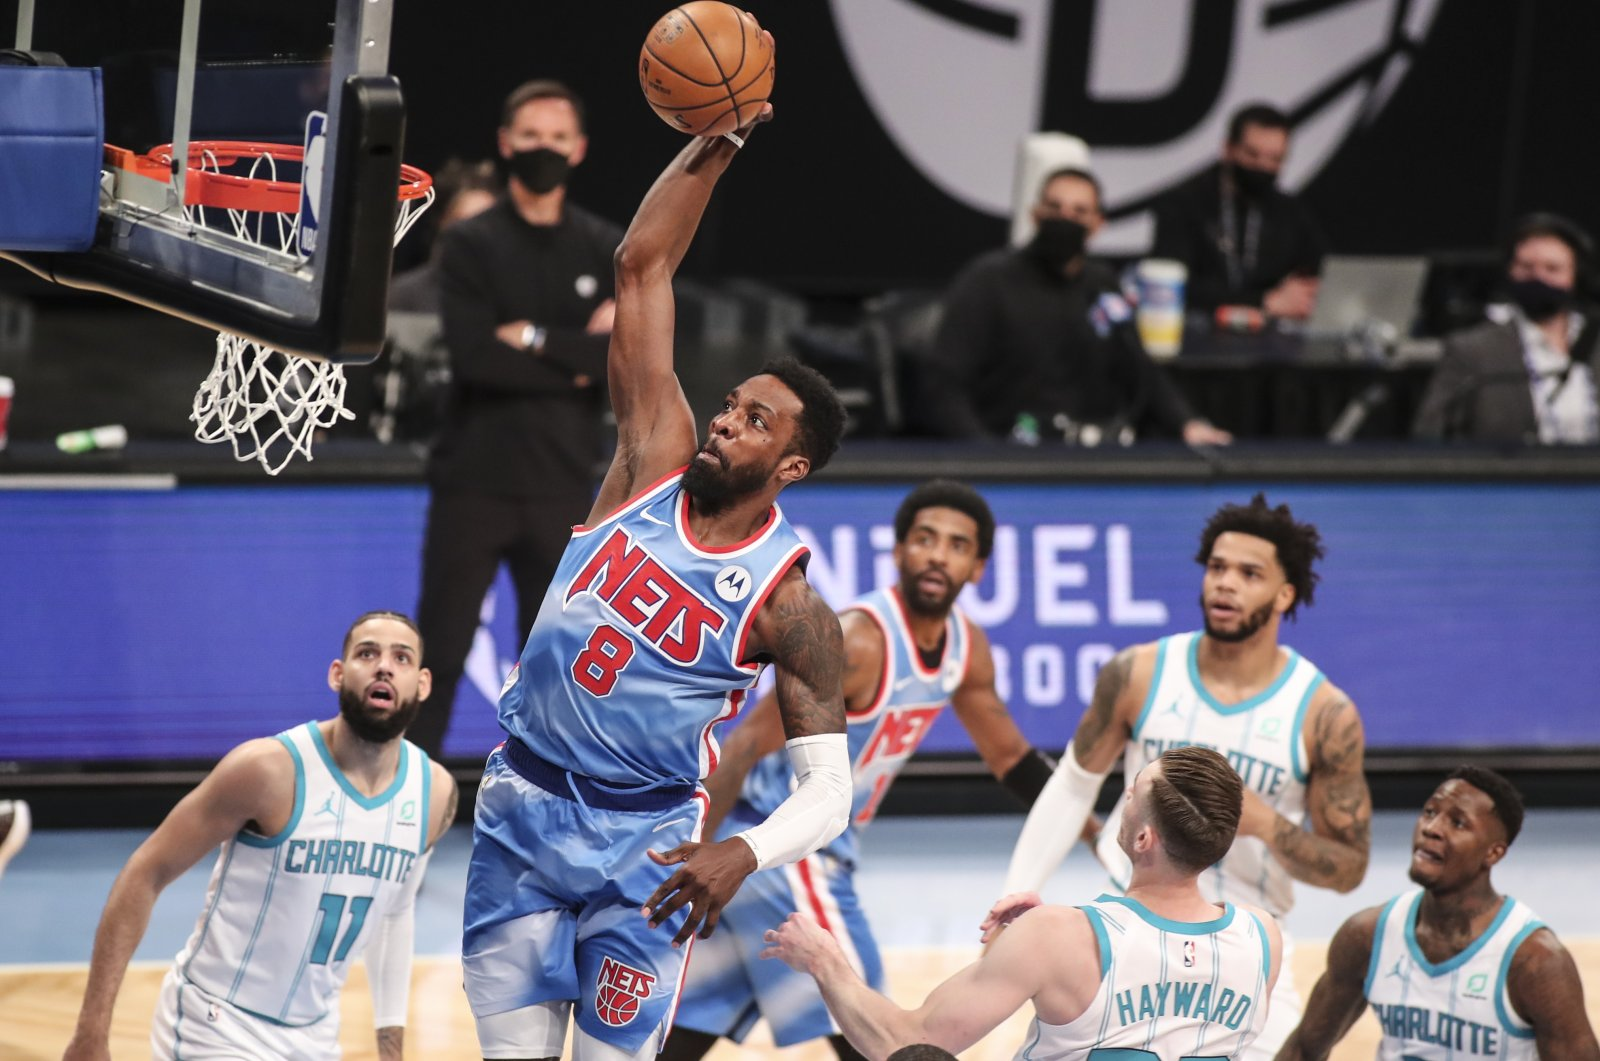 Brooklyn Nets forward Jeff Green (C) goes in for a slam dunk in the first quarter against the Charlotte Hornets at Barclays Center, Brooklyn, New York, U.S., Apr 1, 2021. (Reuters Photo)